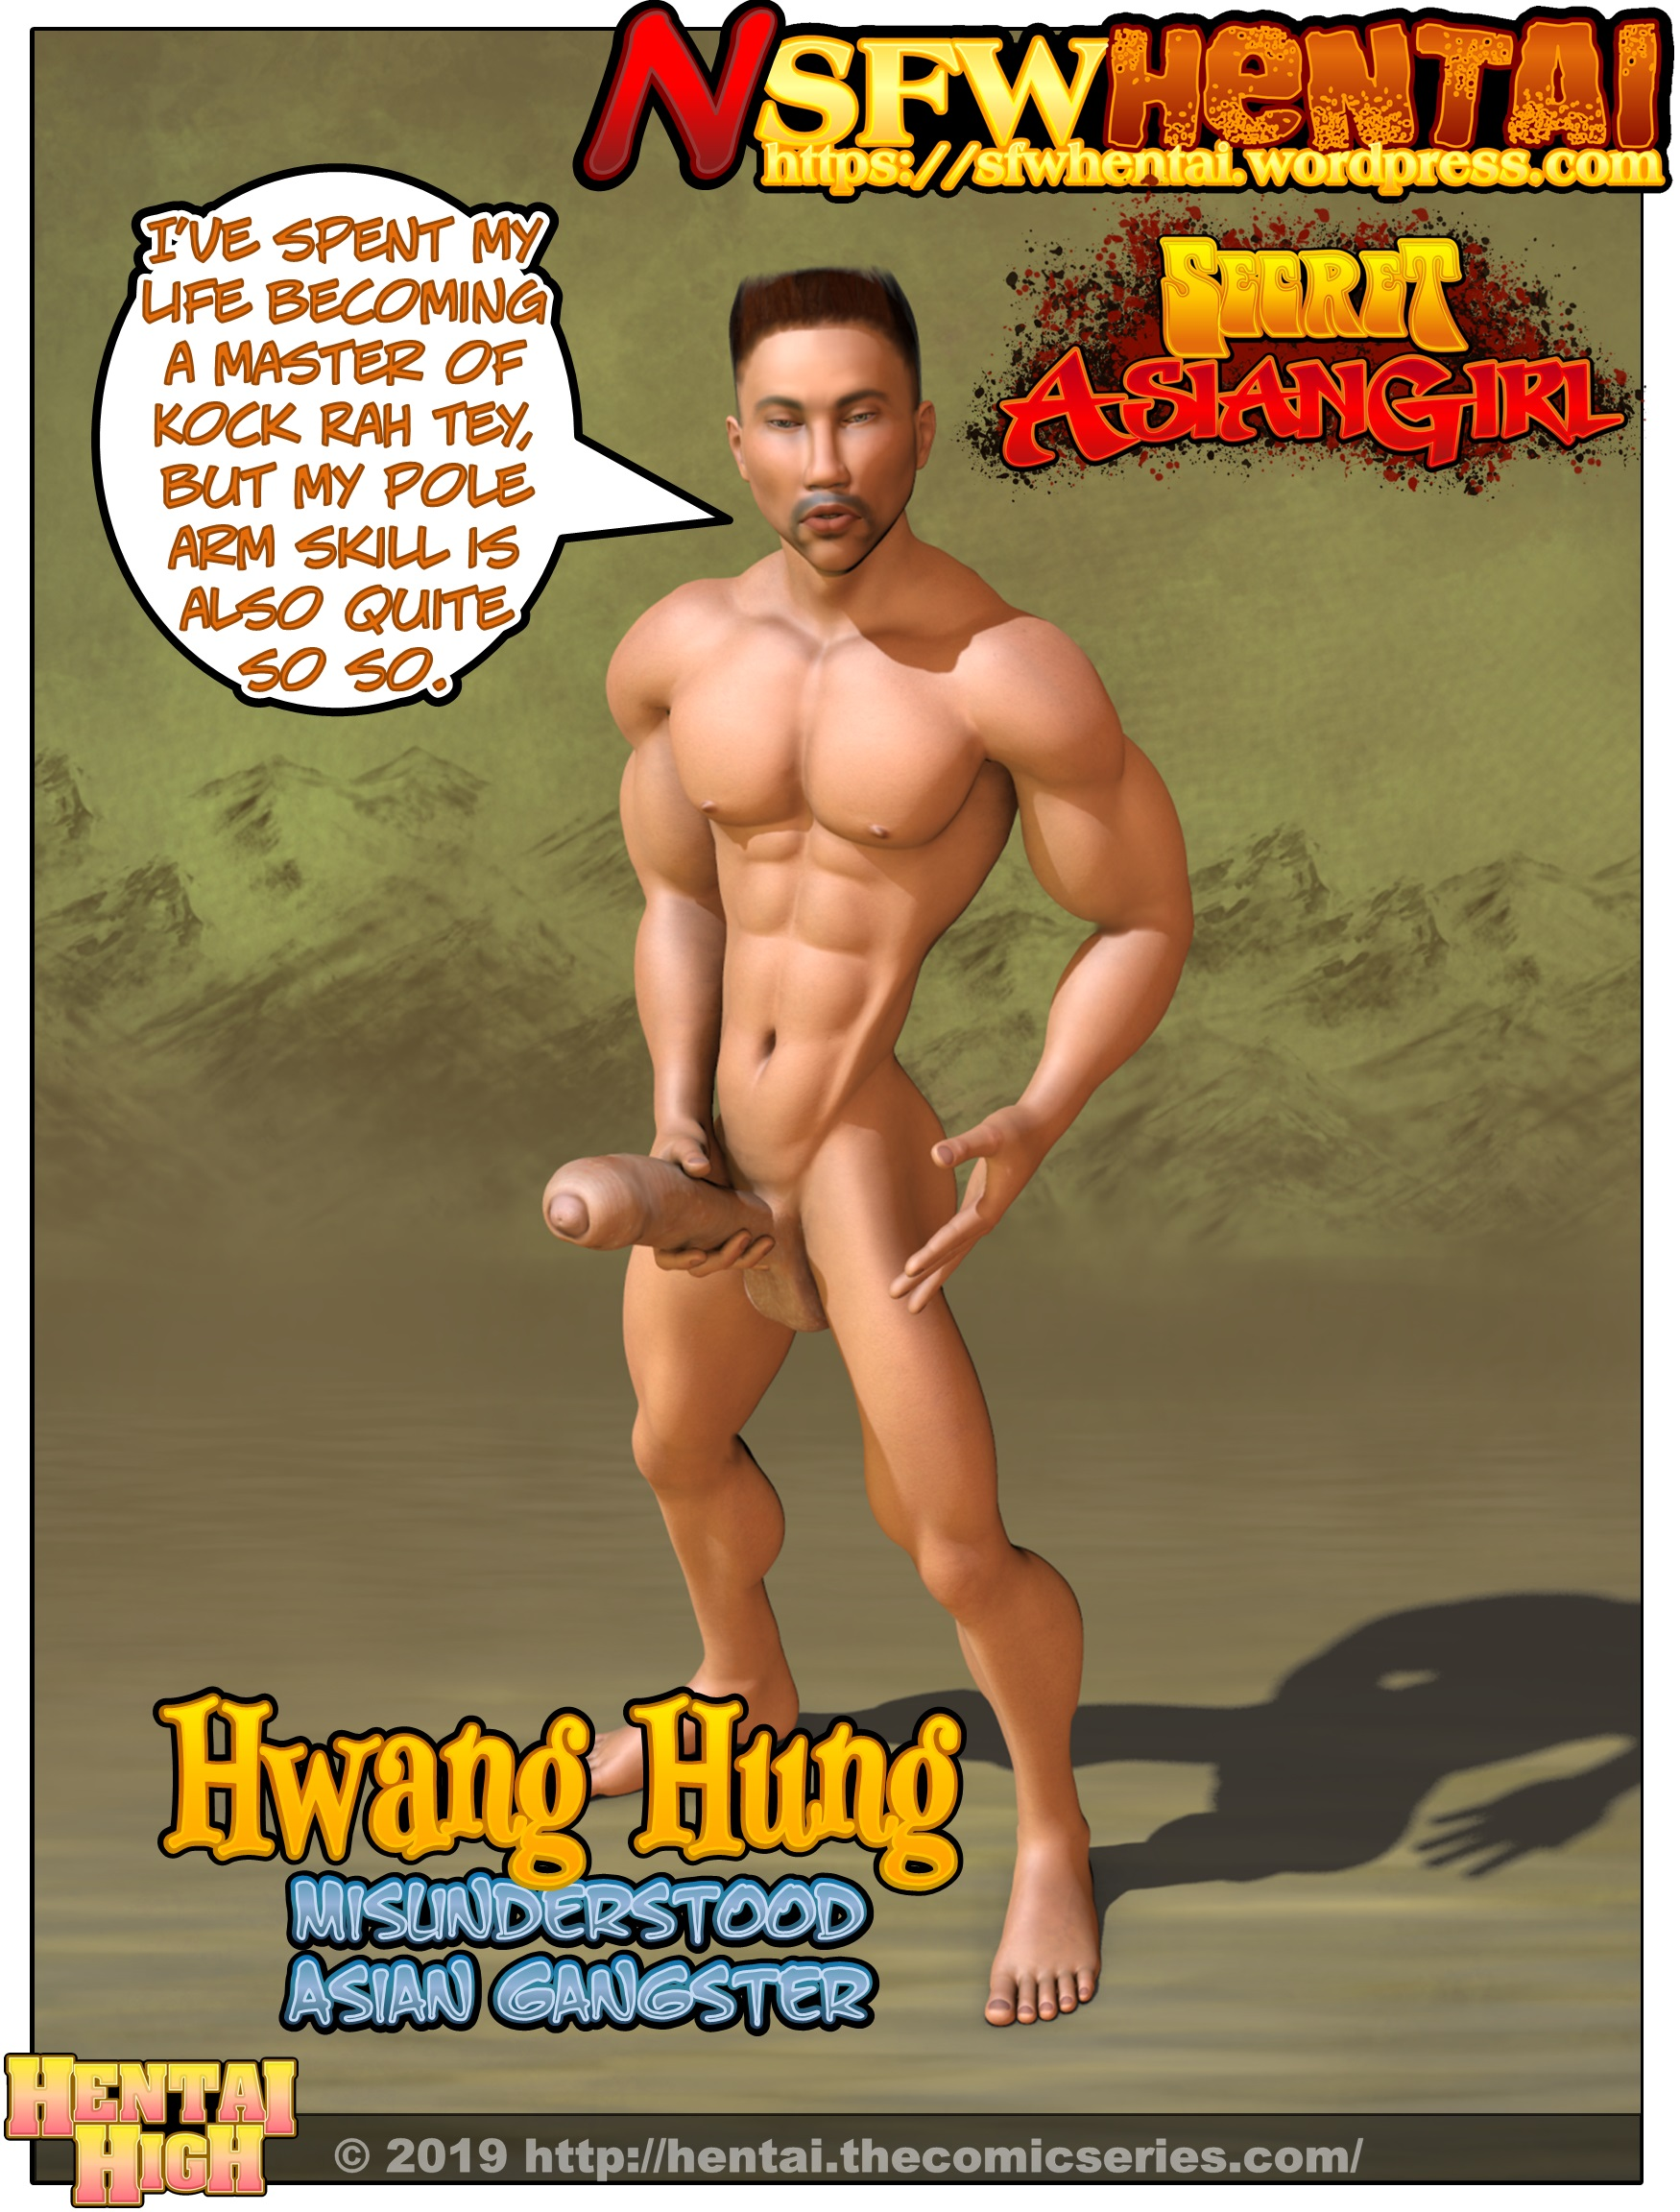 Hung Bishonen Martial Arts Master Asian Porn Gangster Stud Huang Hung.